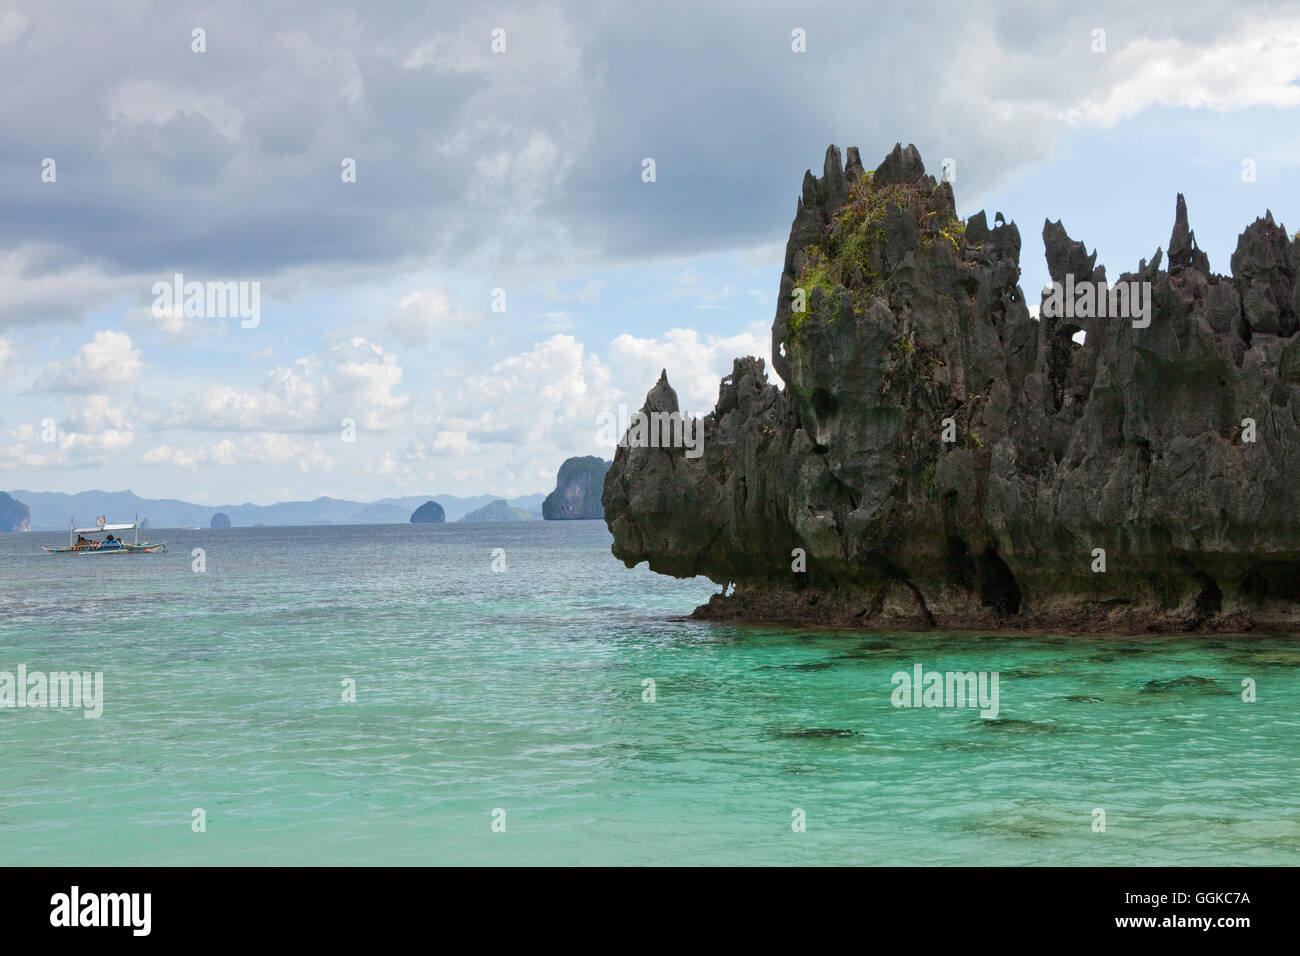 Bizarre rocks in the archipelago Bacuit near El Nido, Palawan Island, South China Sea, Philippines, Asia - Stock Image